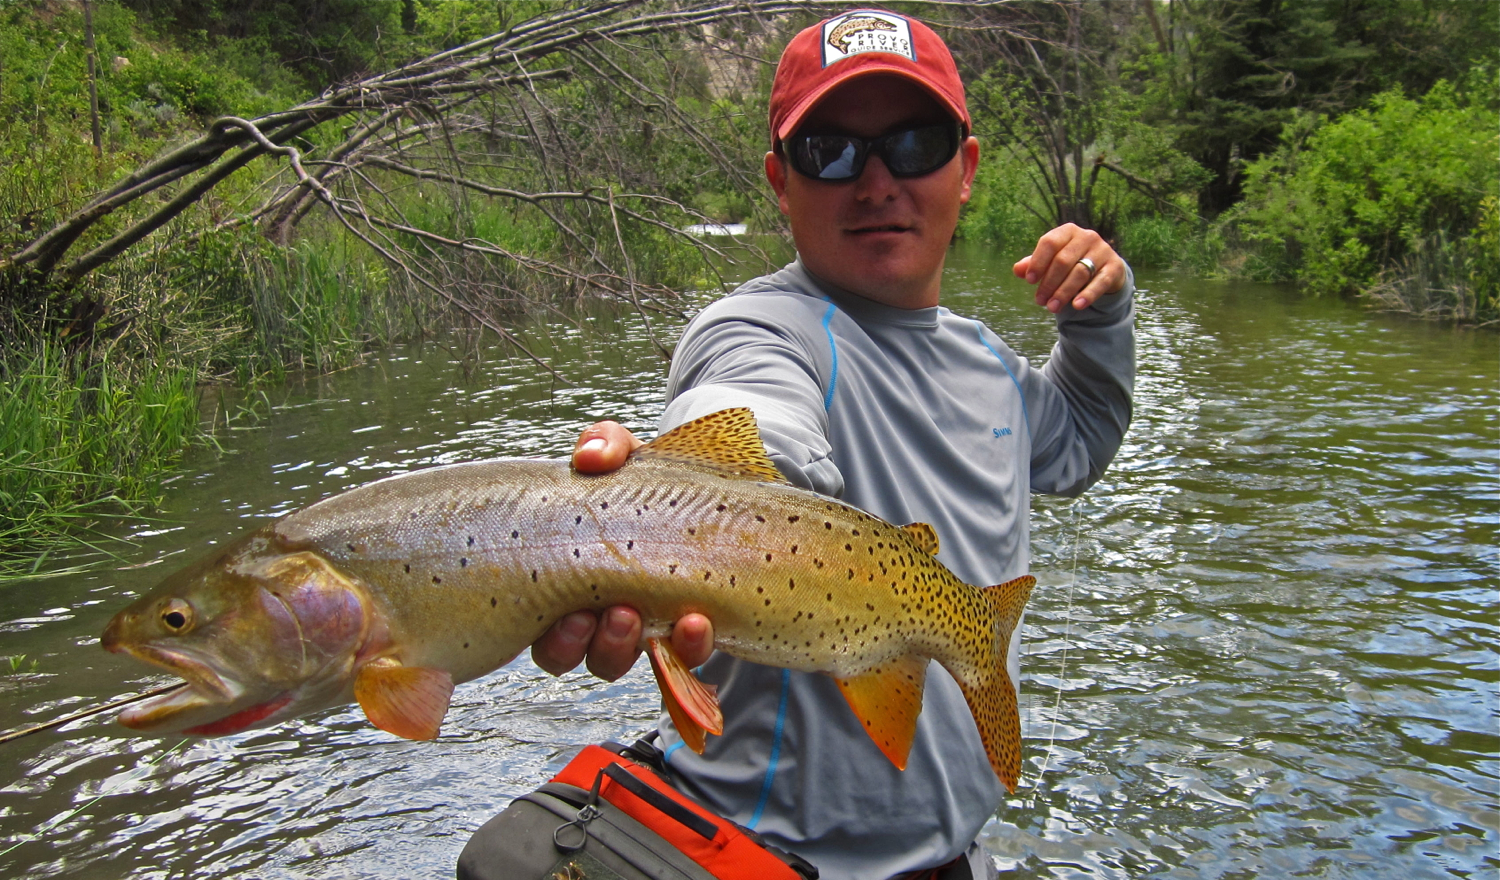 jeff with a beast of a cutthroat trout caught on the dry